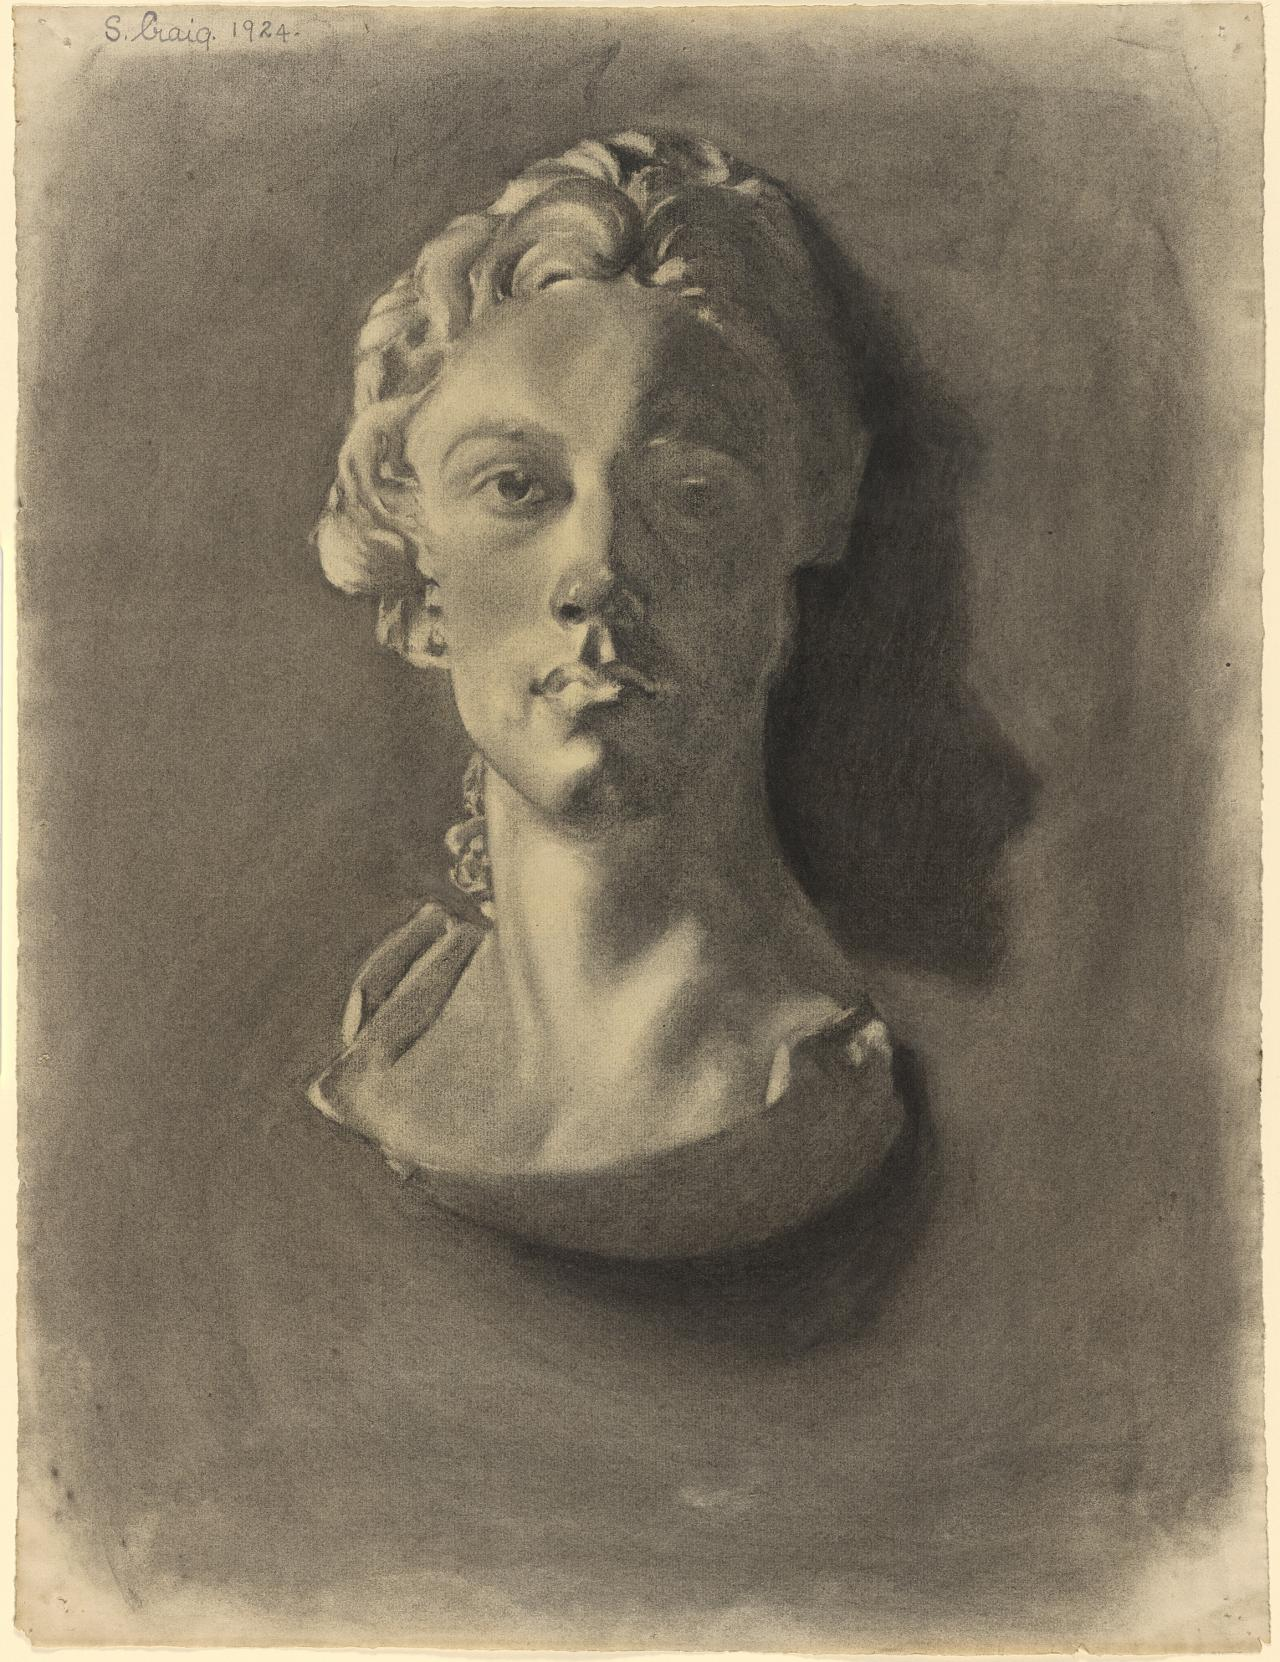 Plaster bust of a young woman